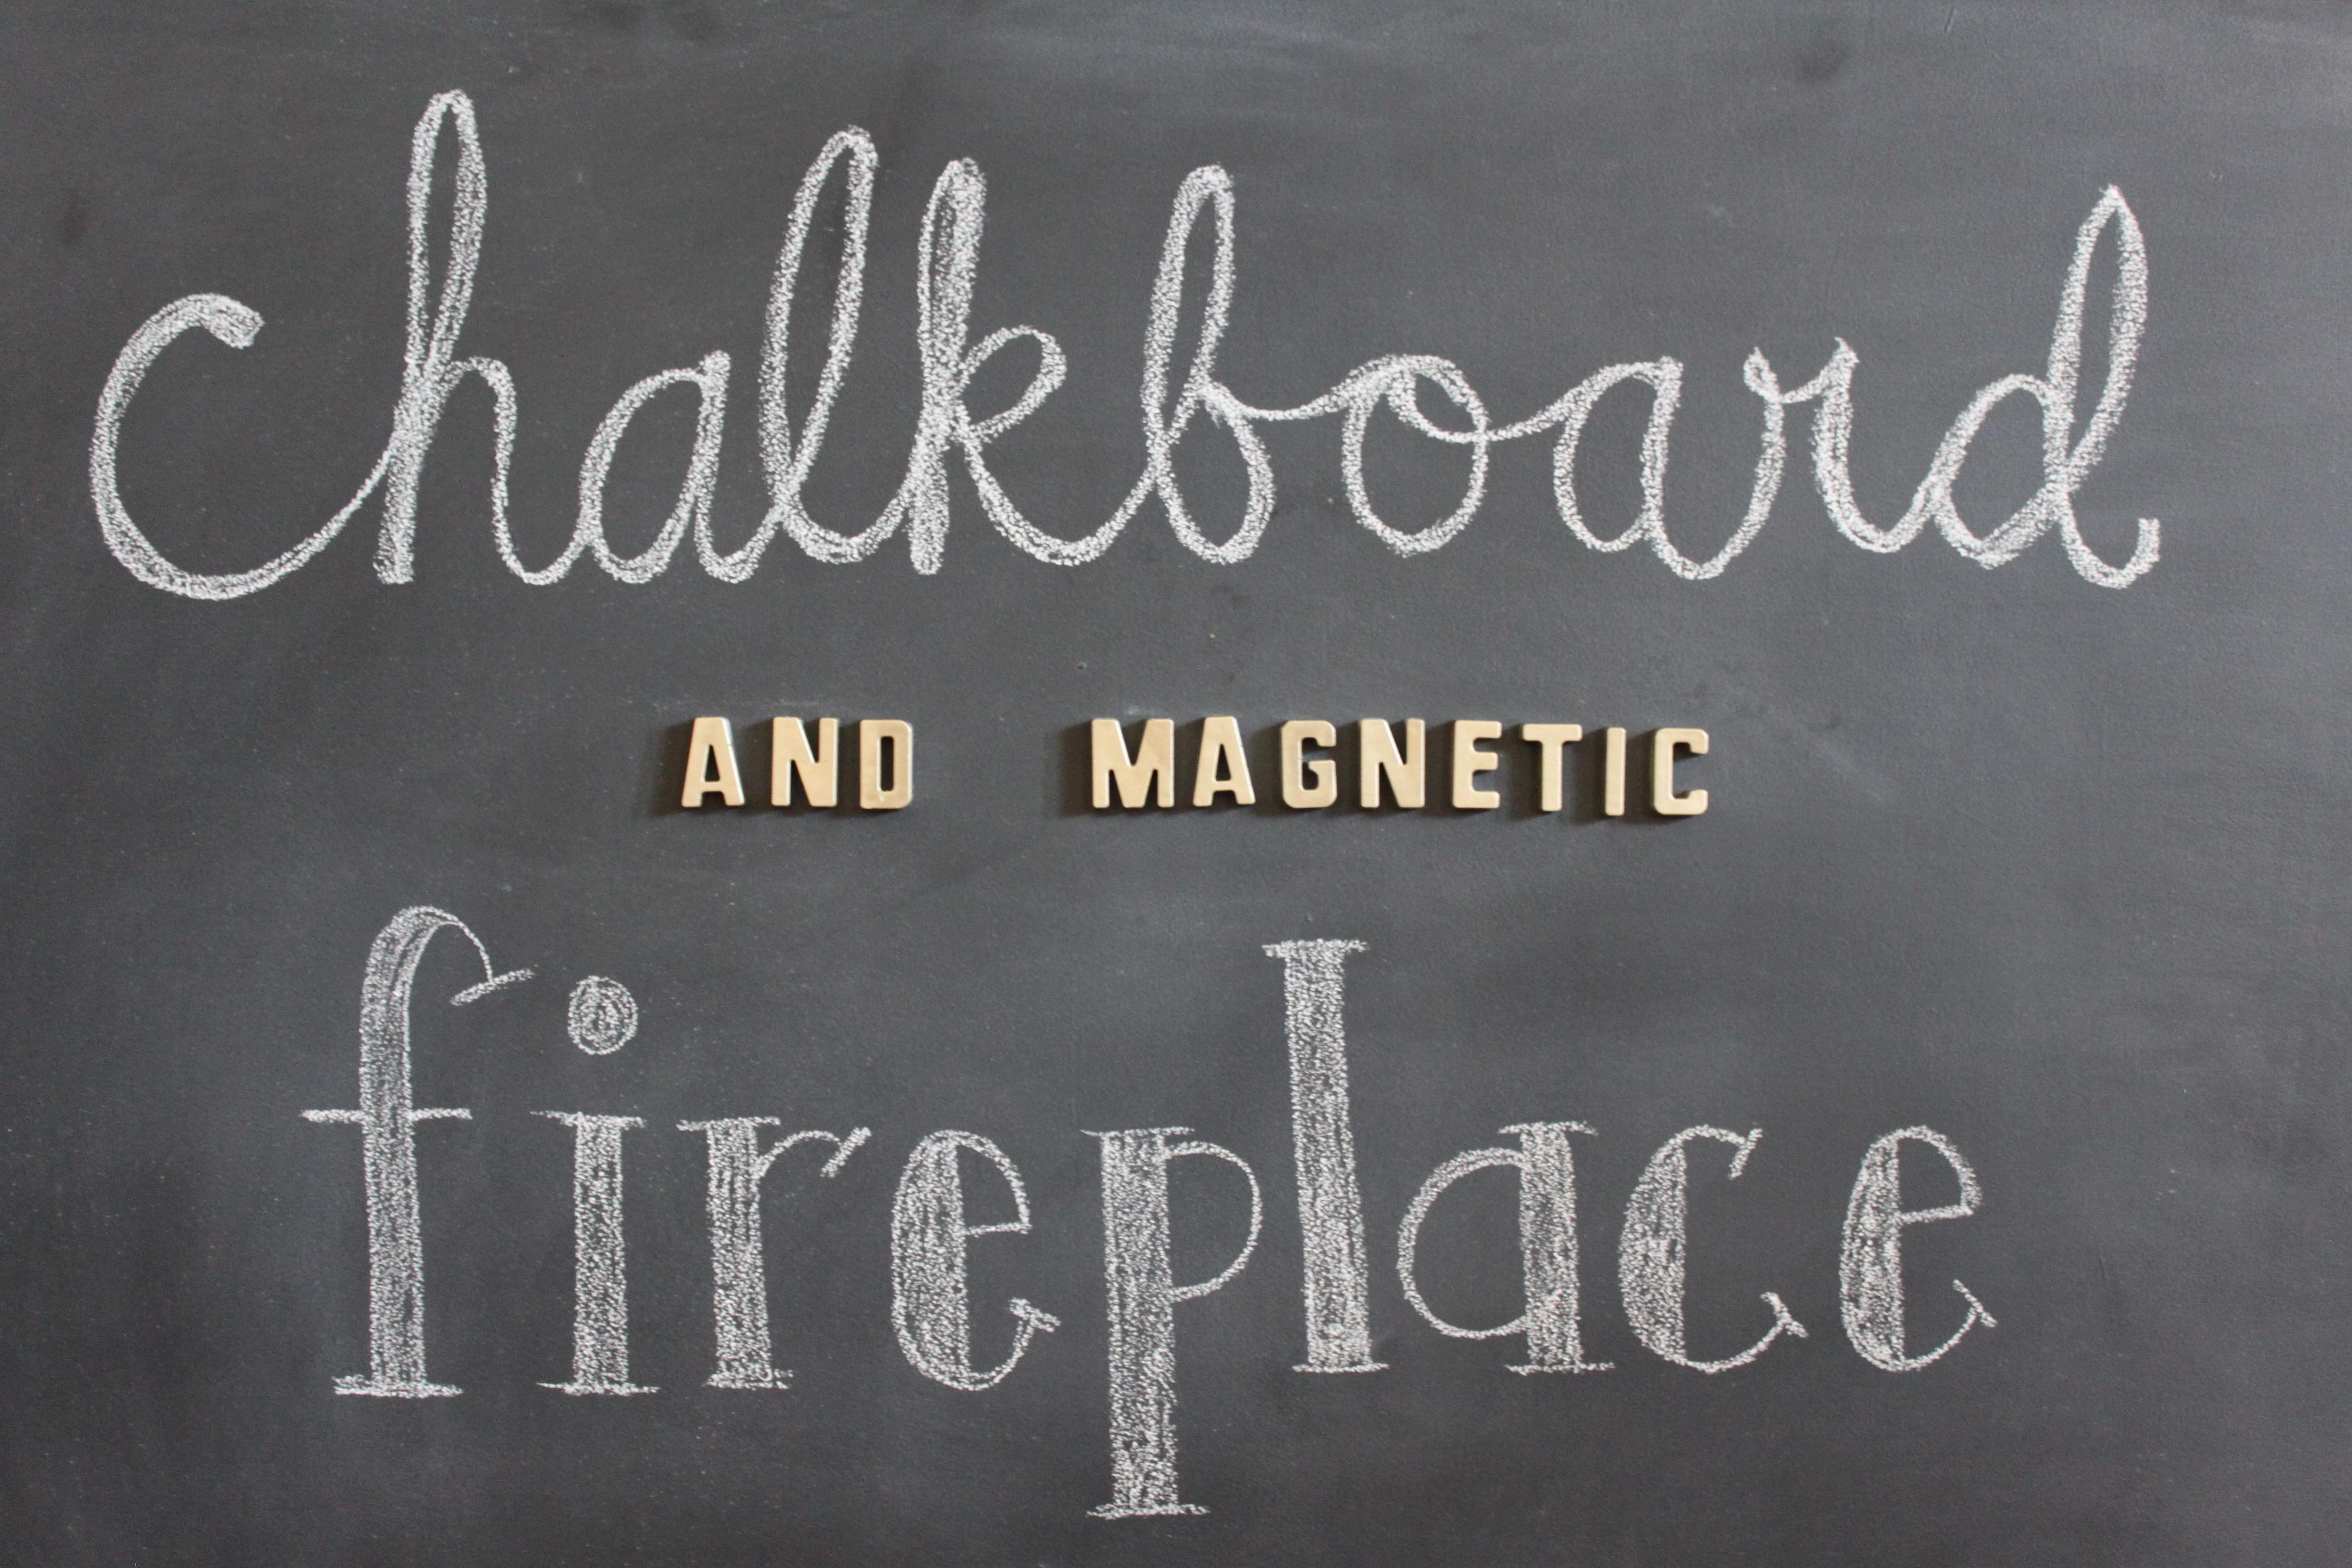 Diy Chalkboard Magentic Fireplace Cover Sassy Wife